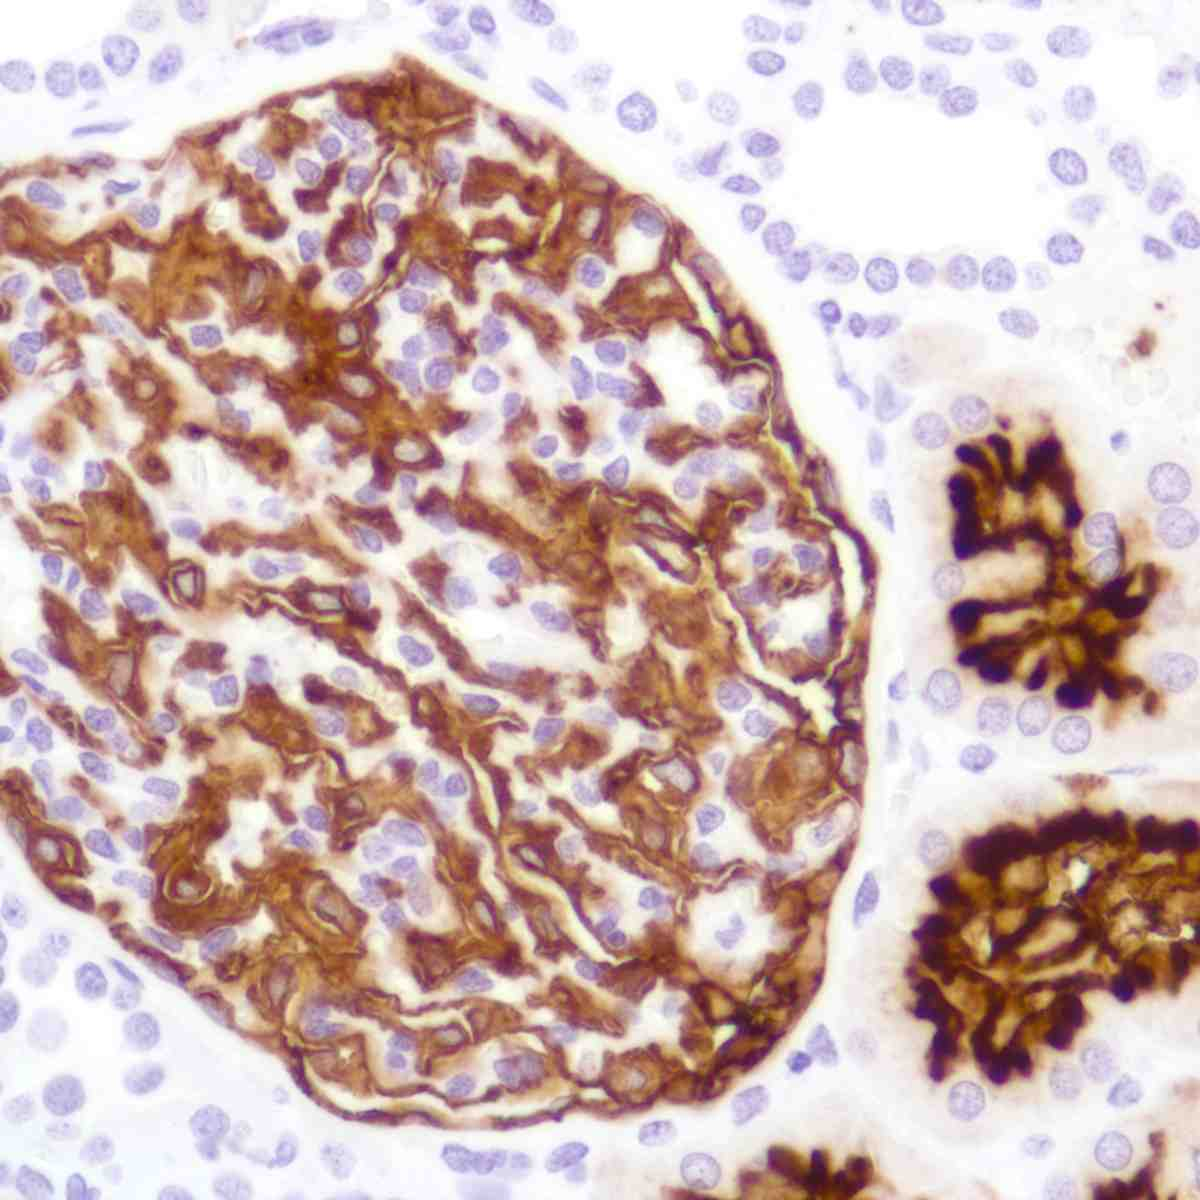 Human Kidney stained with anti-CD10 antibody